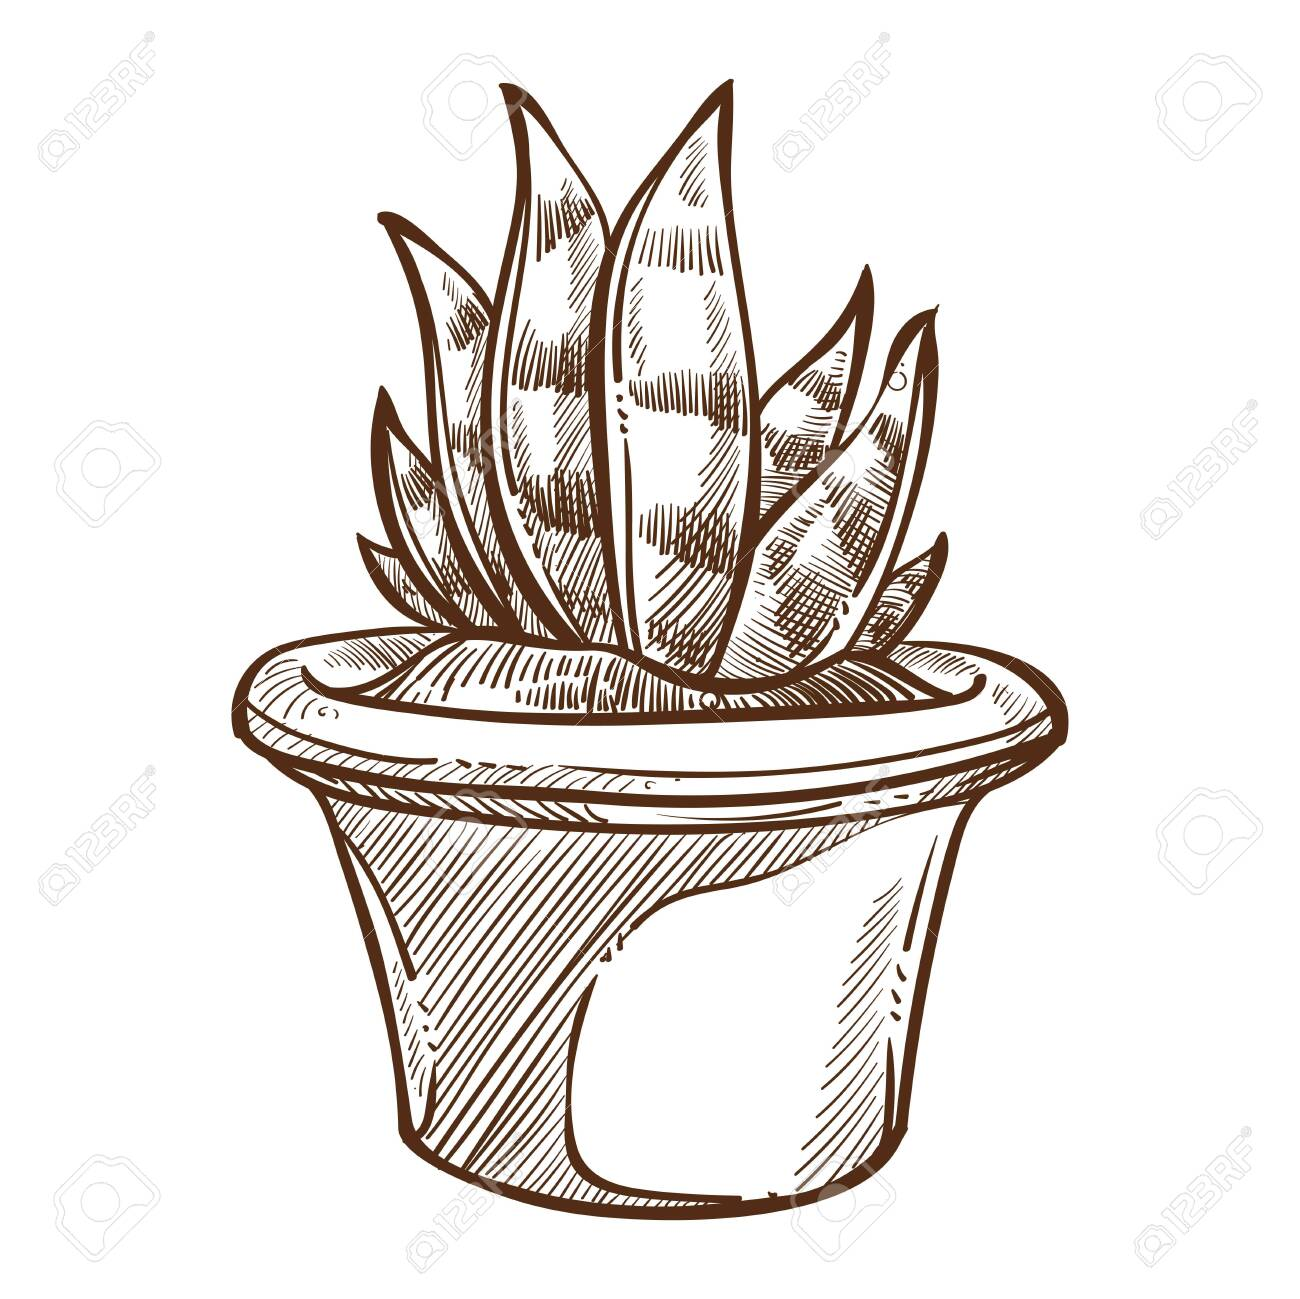 Indoor Plant Aloe In Pot Isolated Sketch Home Decor Vector Houseplant Royalty Free Cliparts Vectors And Stock Illustration Image 124518489